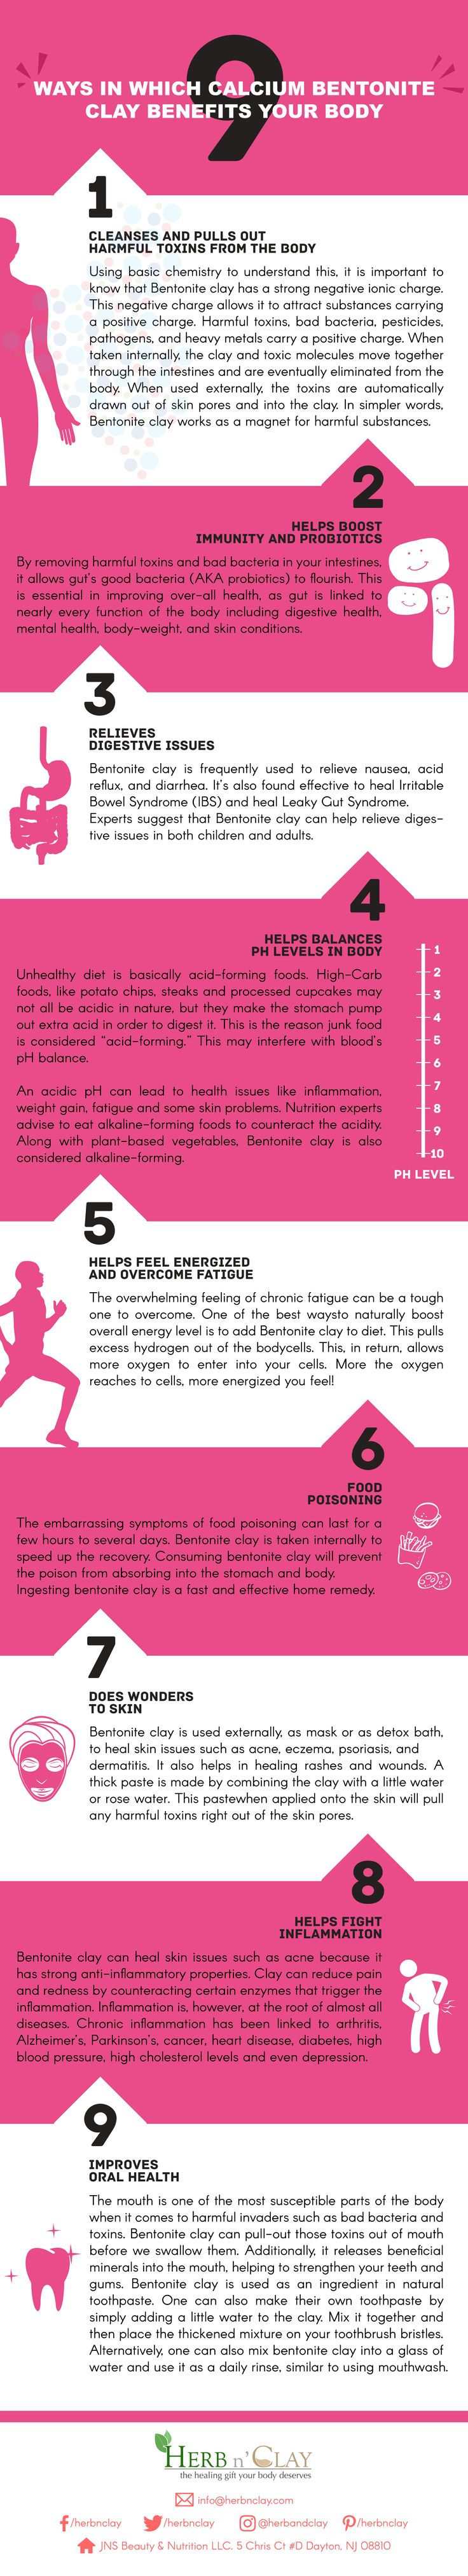 9 Ways In Which Calcium Bentonite Clay Benefits Your Body - Checkout this amazing infographic for proven bentonite benefits.